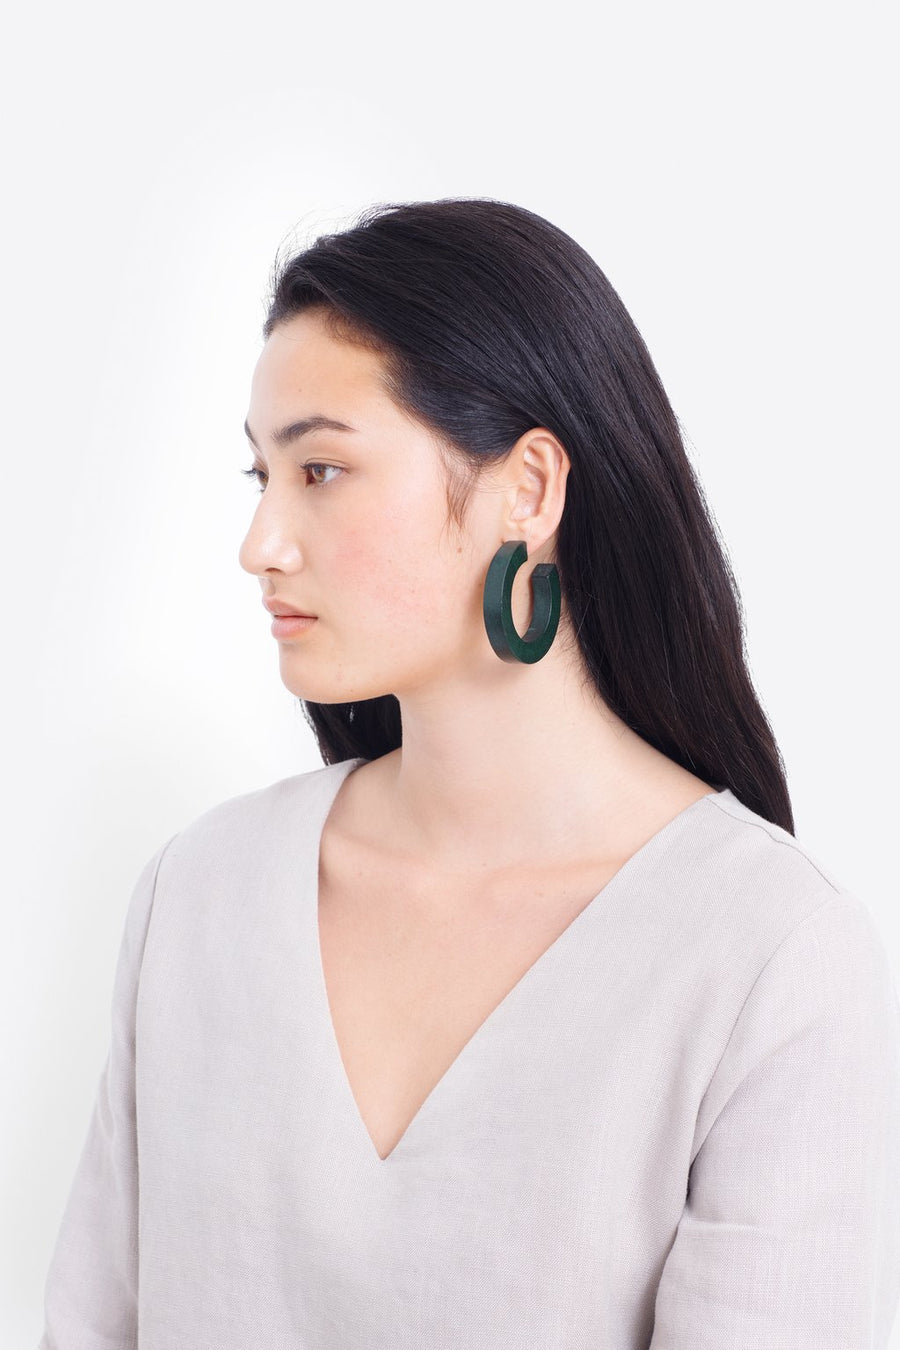 SONA EARRING - Shop Online At Mookah - mookah.com.au